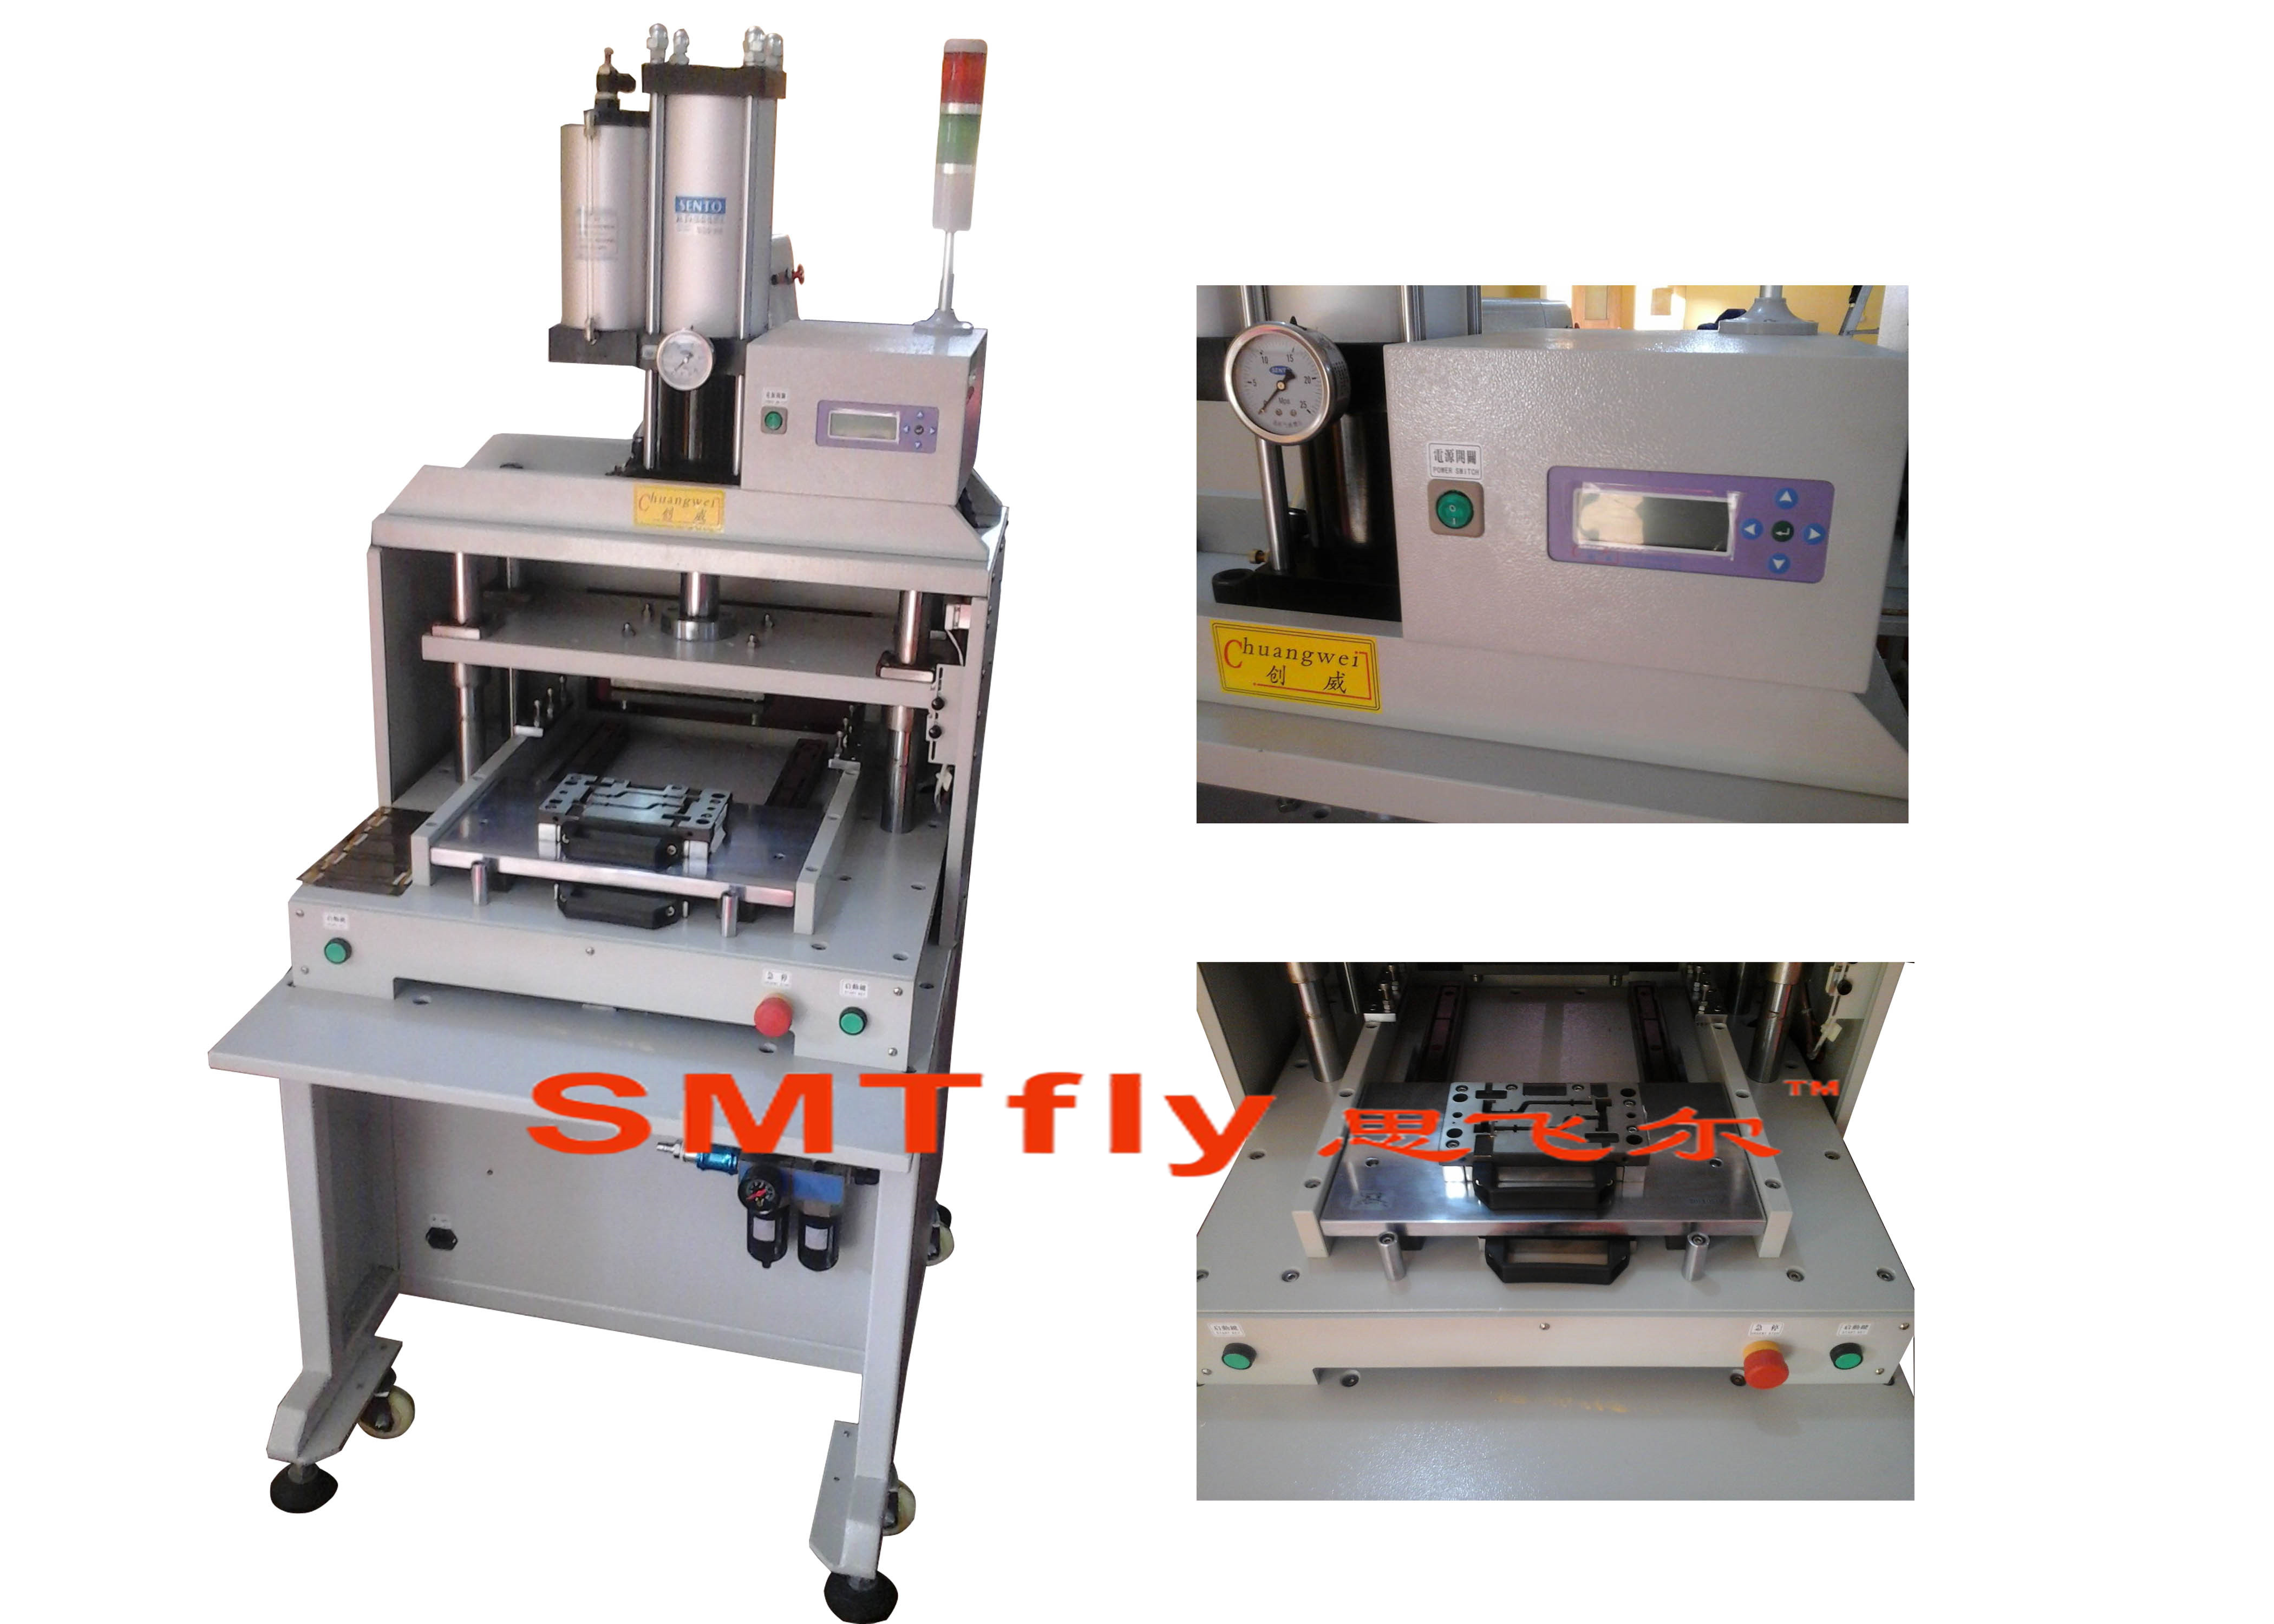 High Efficiency FPC Automatic Punching Machine,SMTfly-PE